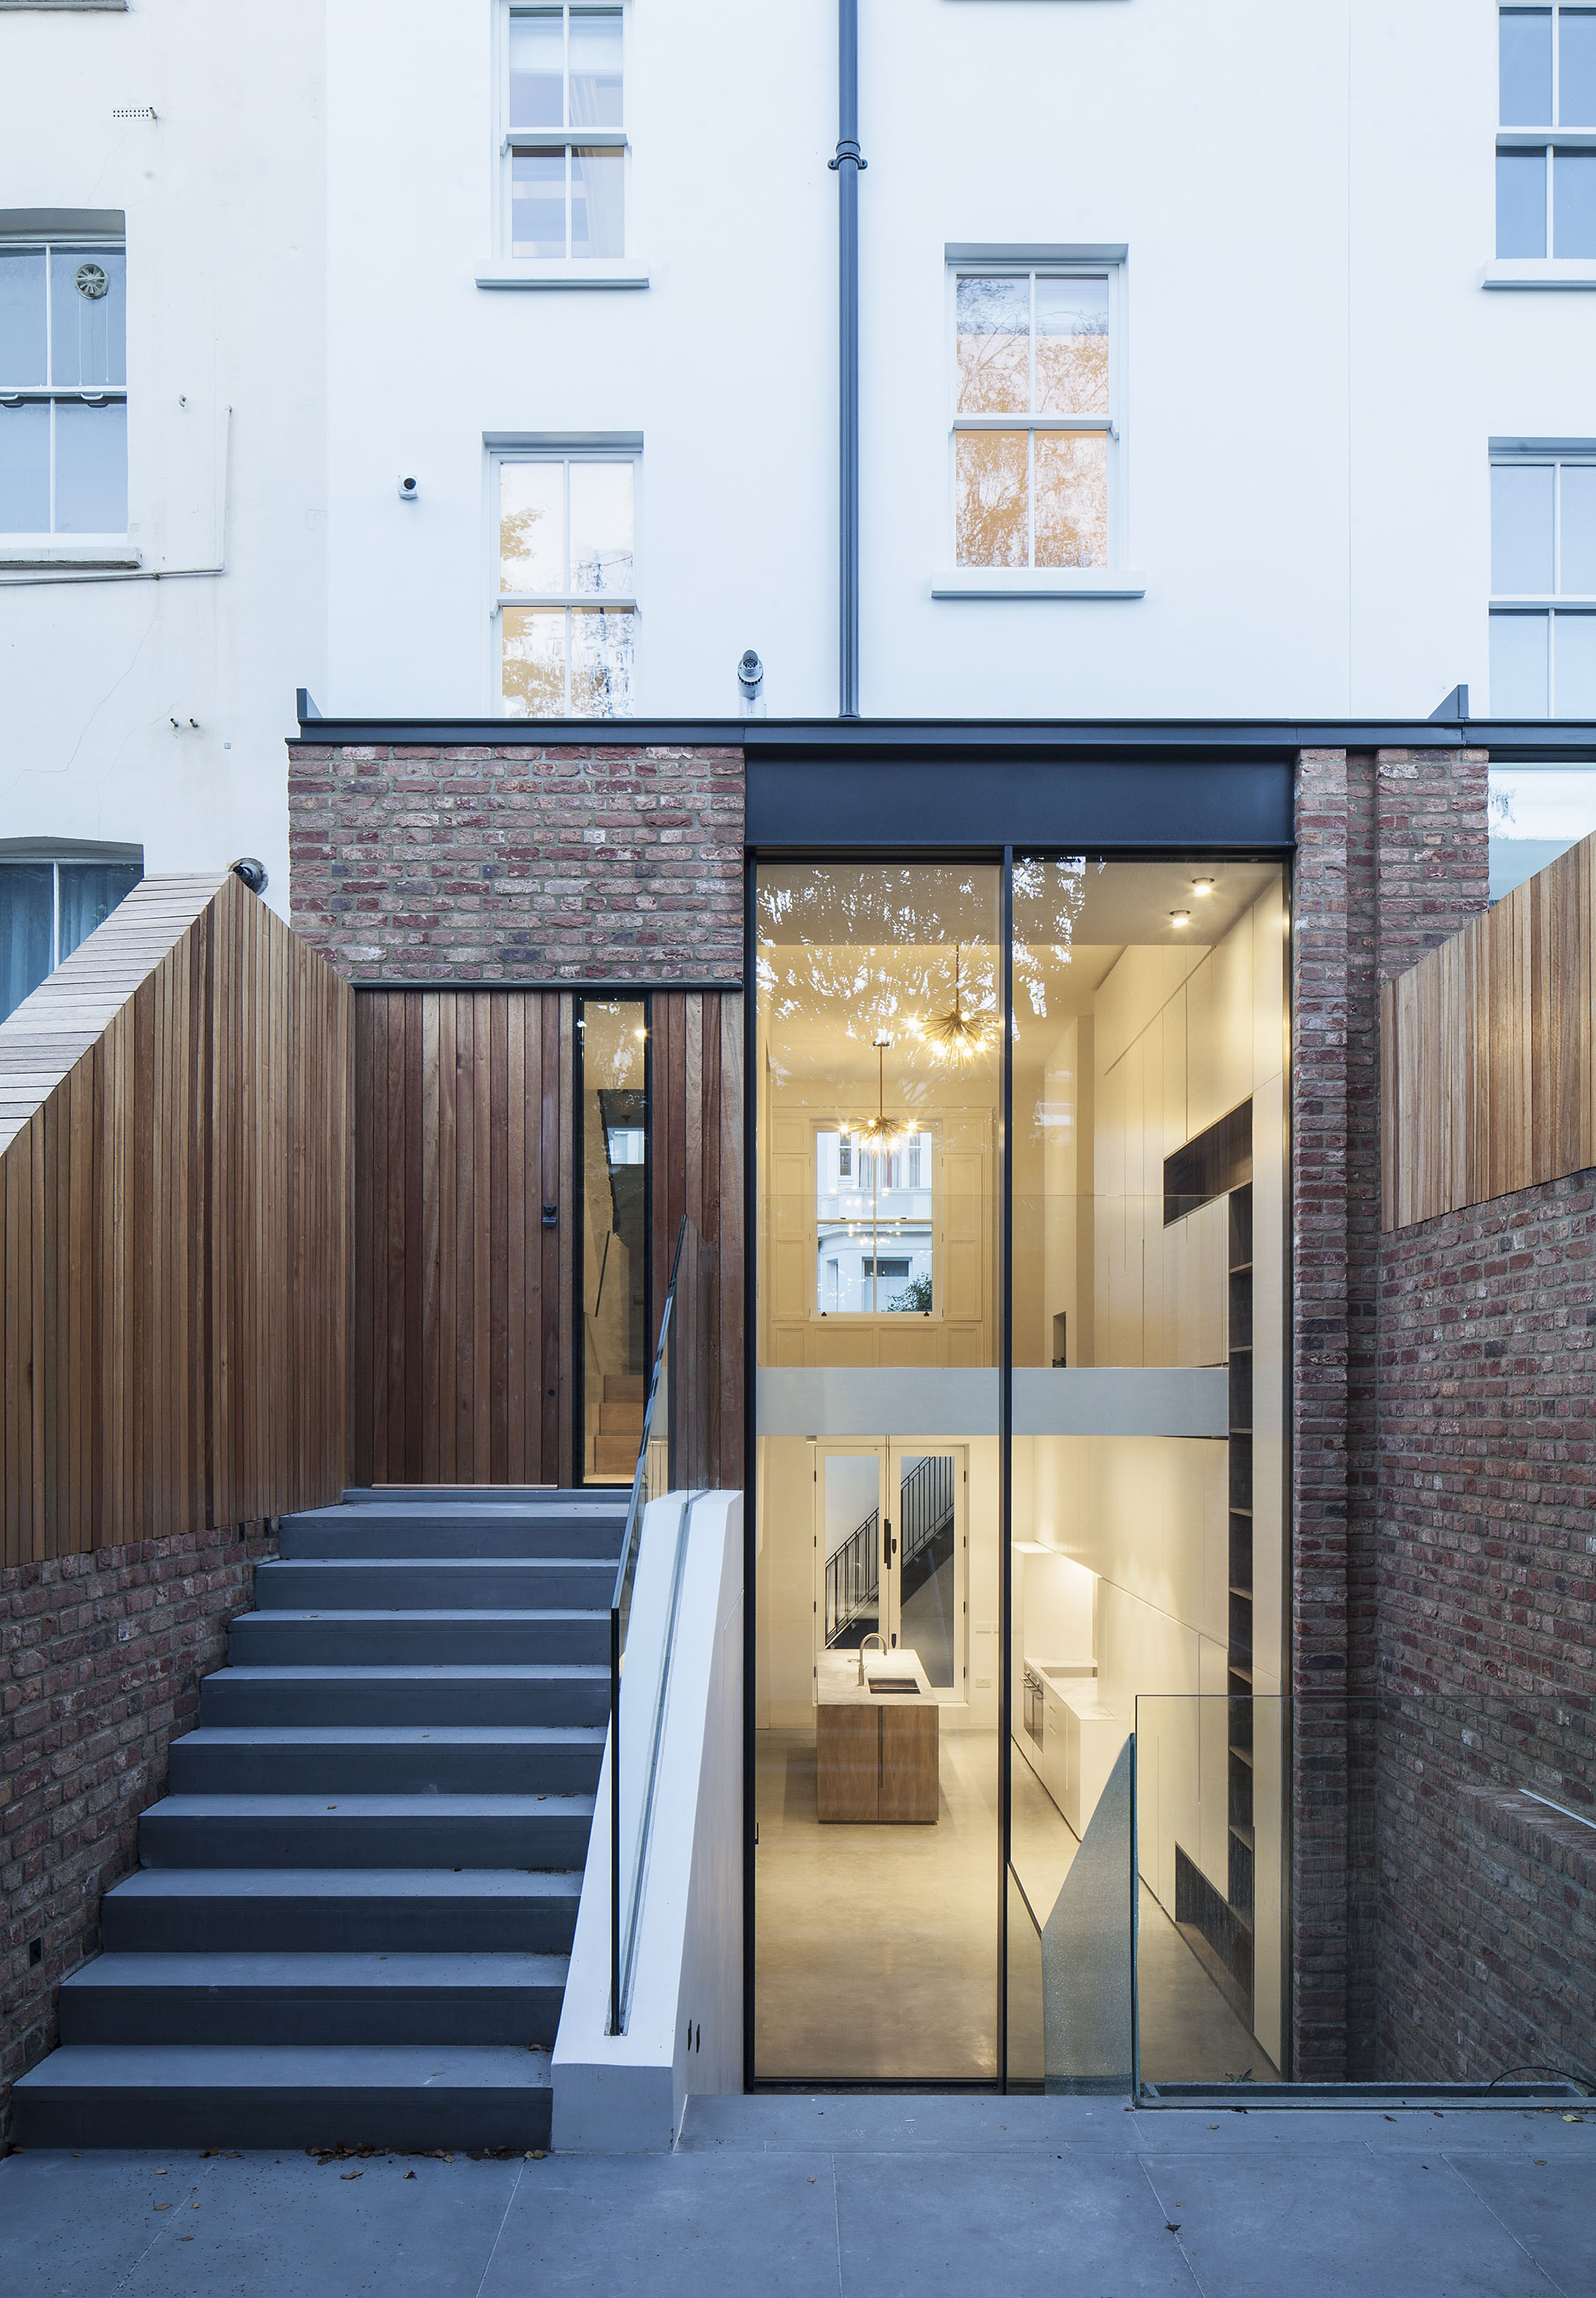 This glass extension uses clear glass interior doors